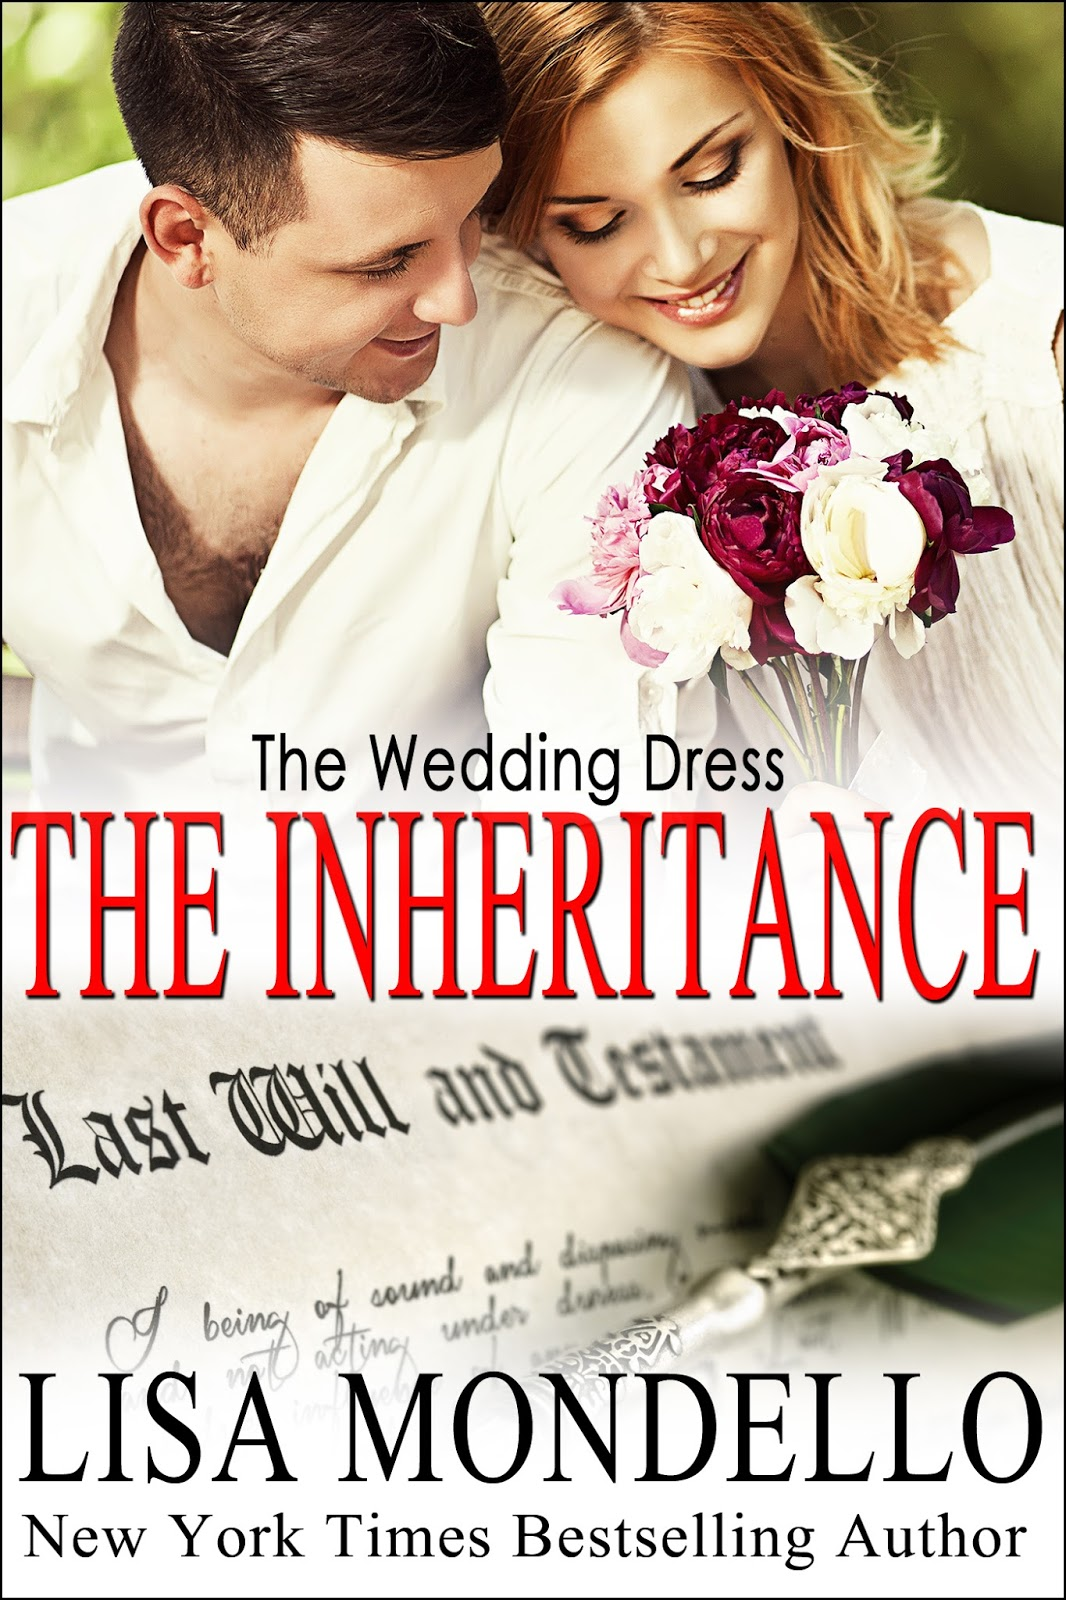 Lisa robertson in wedding dress - Now Scheduling A Release Day Blitz For The Wedding Dress By Lisa Mondello